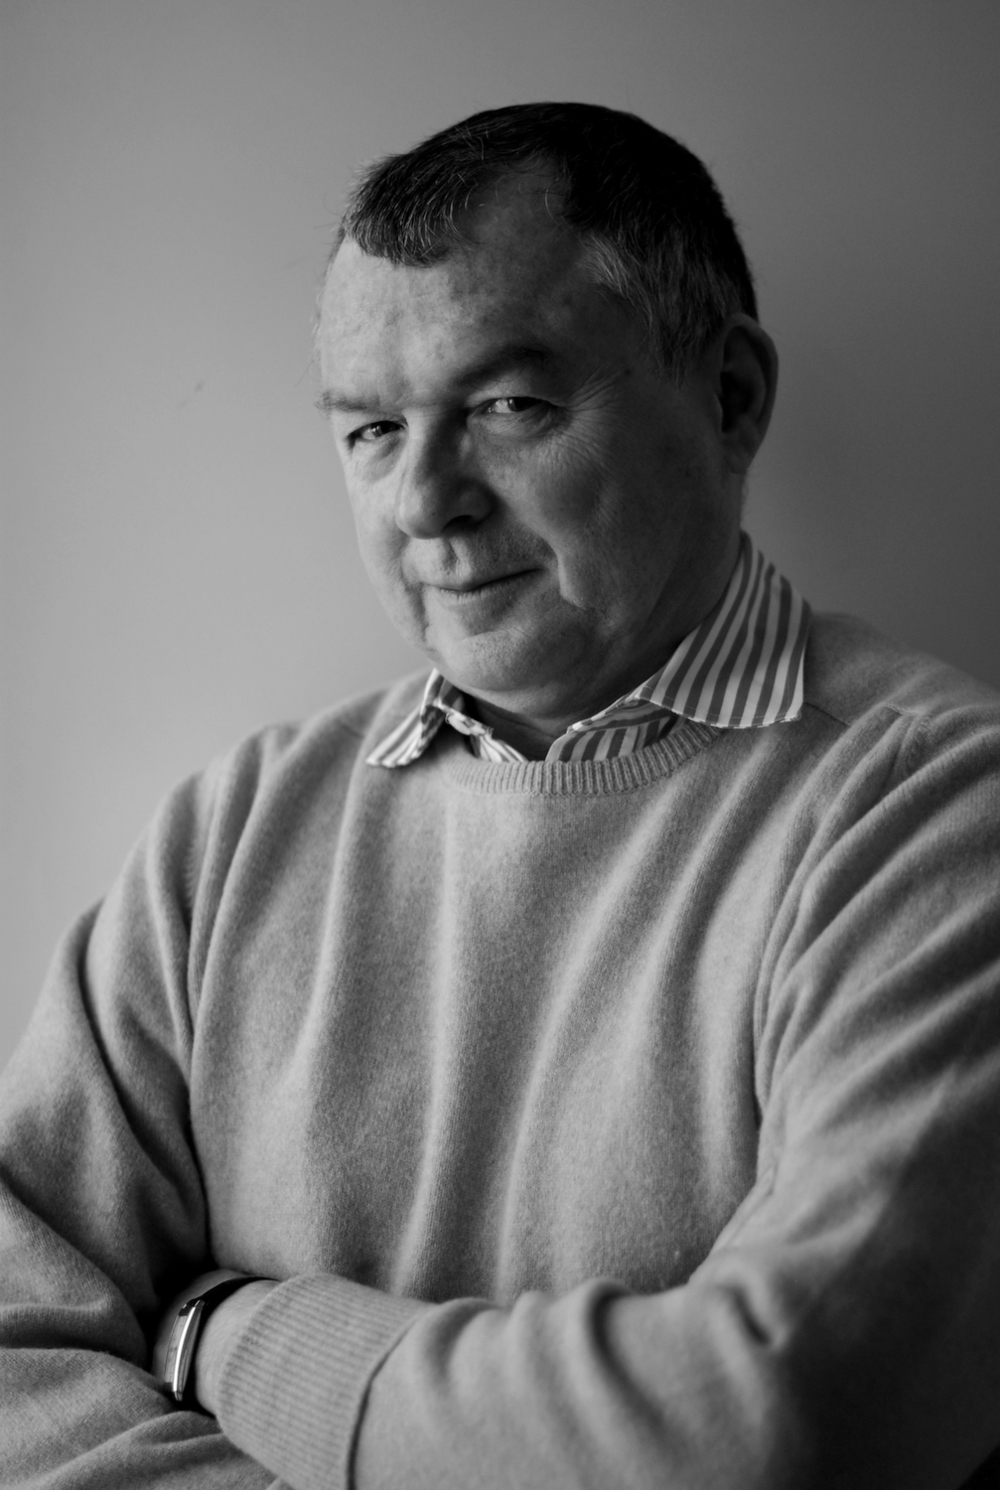 Top spy and award-winning thriller writer Bernard Besson